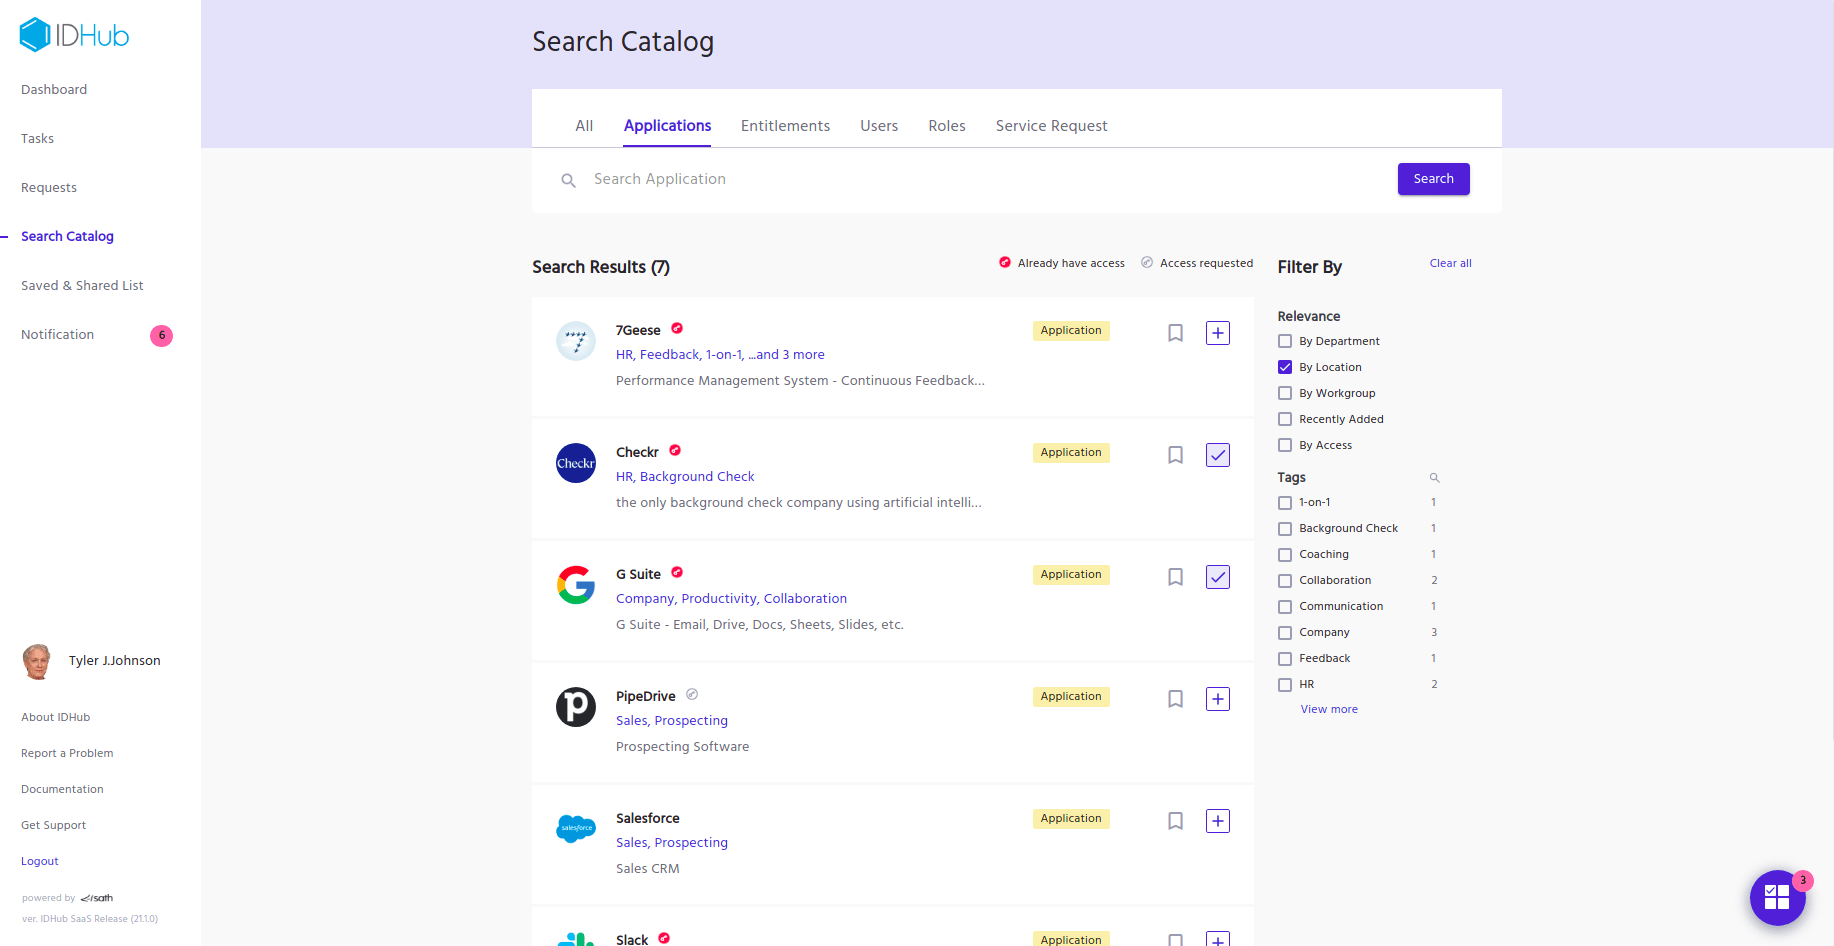 Search Catalog Page